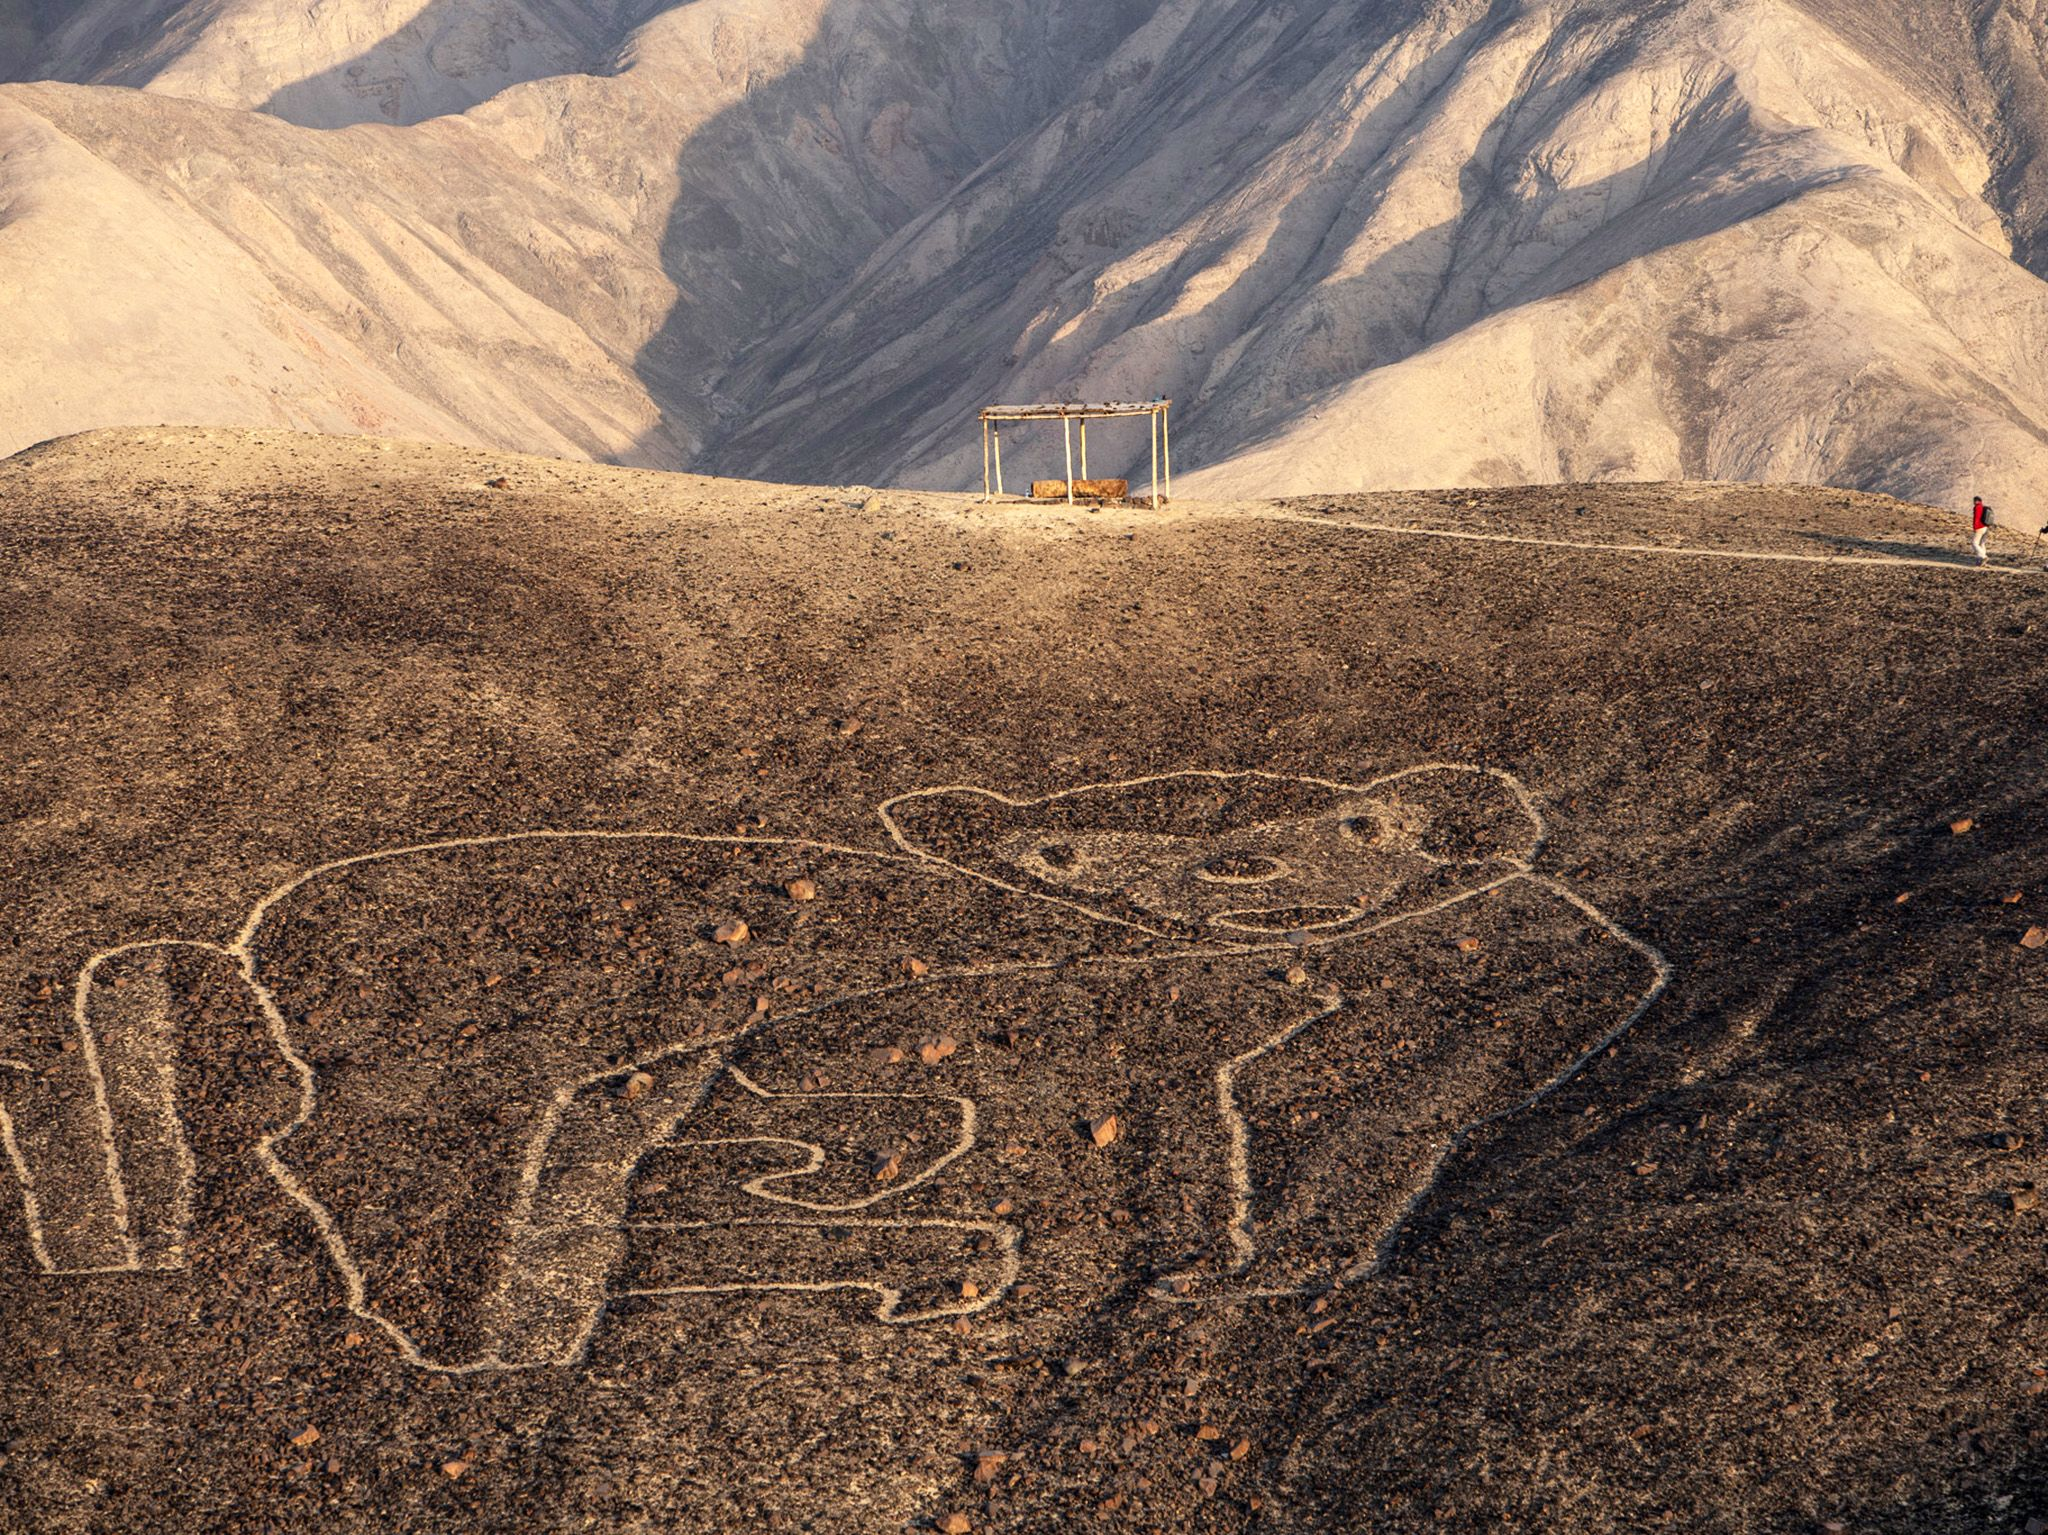 The Nasca Lines of Peru:  ancient images of animals and vast geometric designs etched in the... [Photo of the day - سپتامبر 2019]